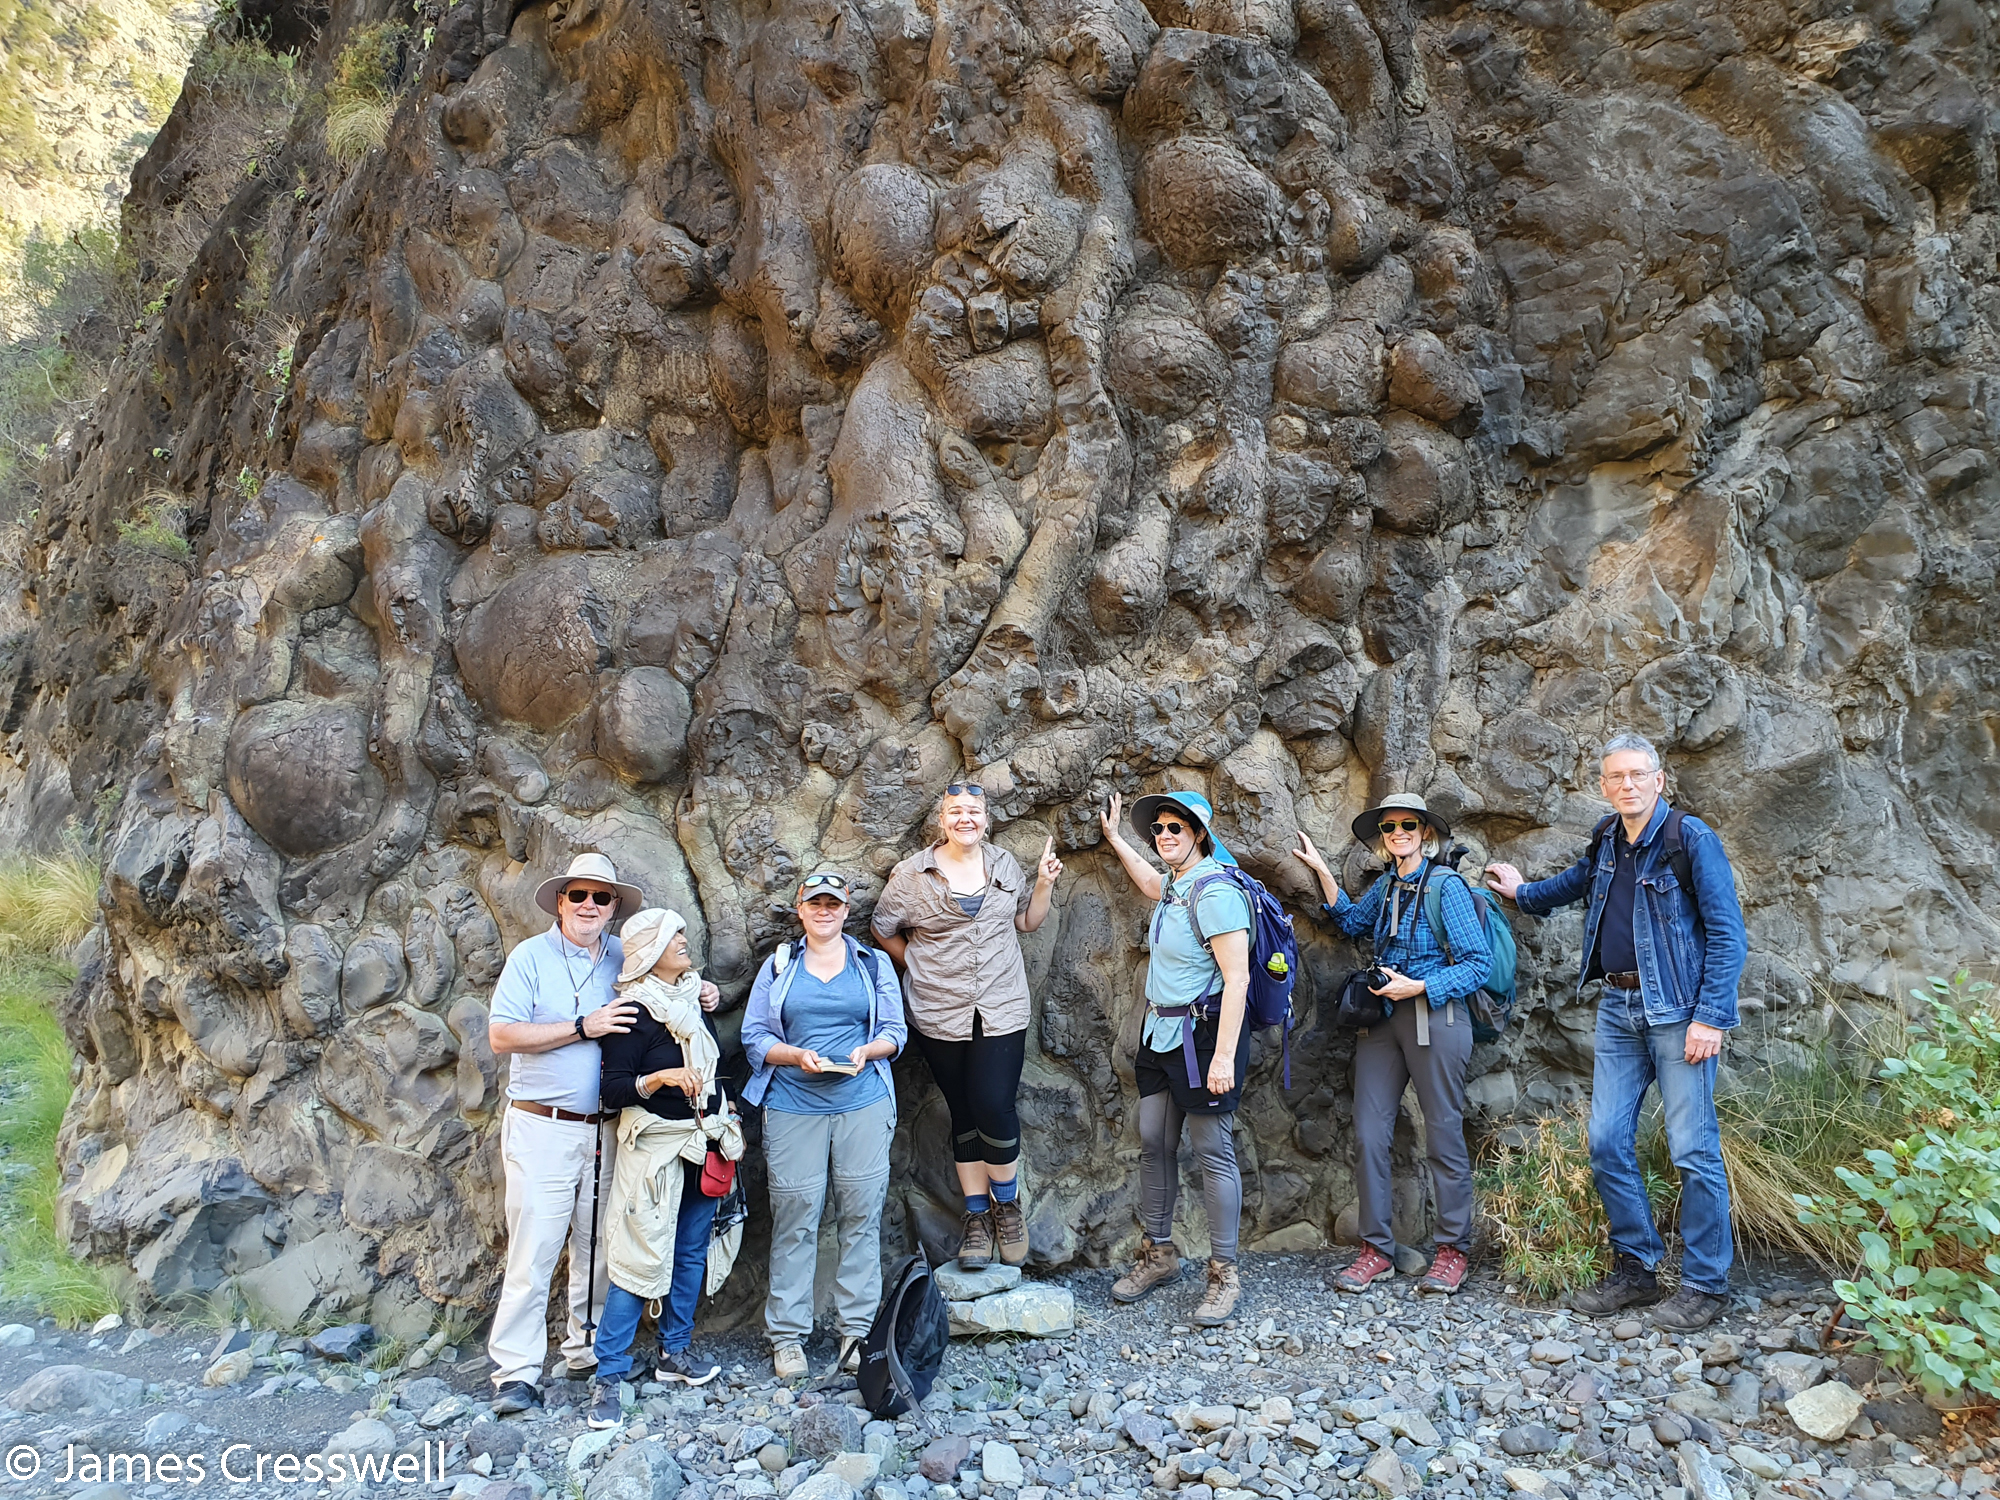 People standing in front of a rock face